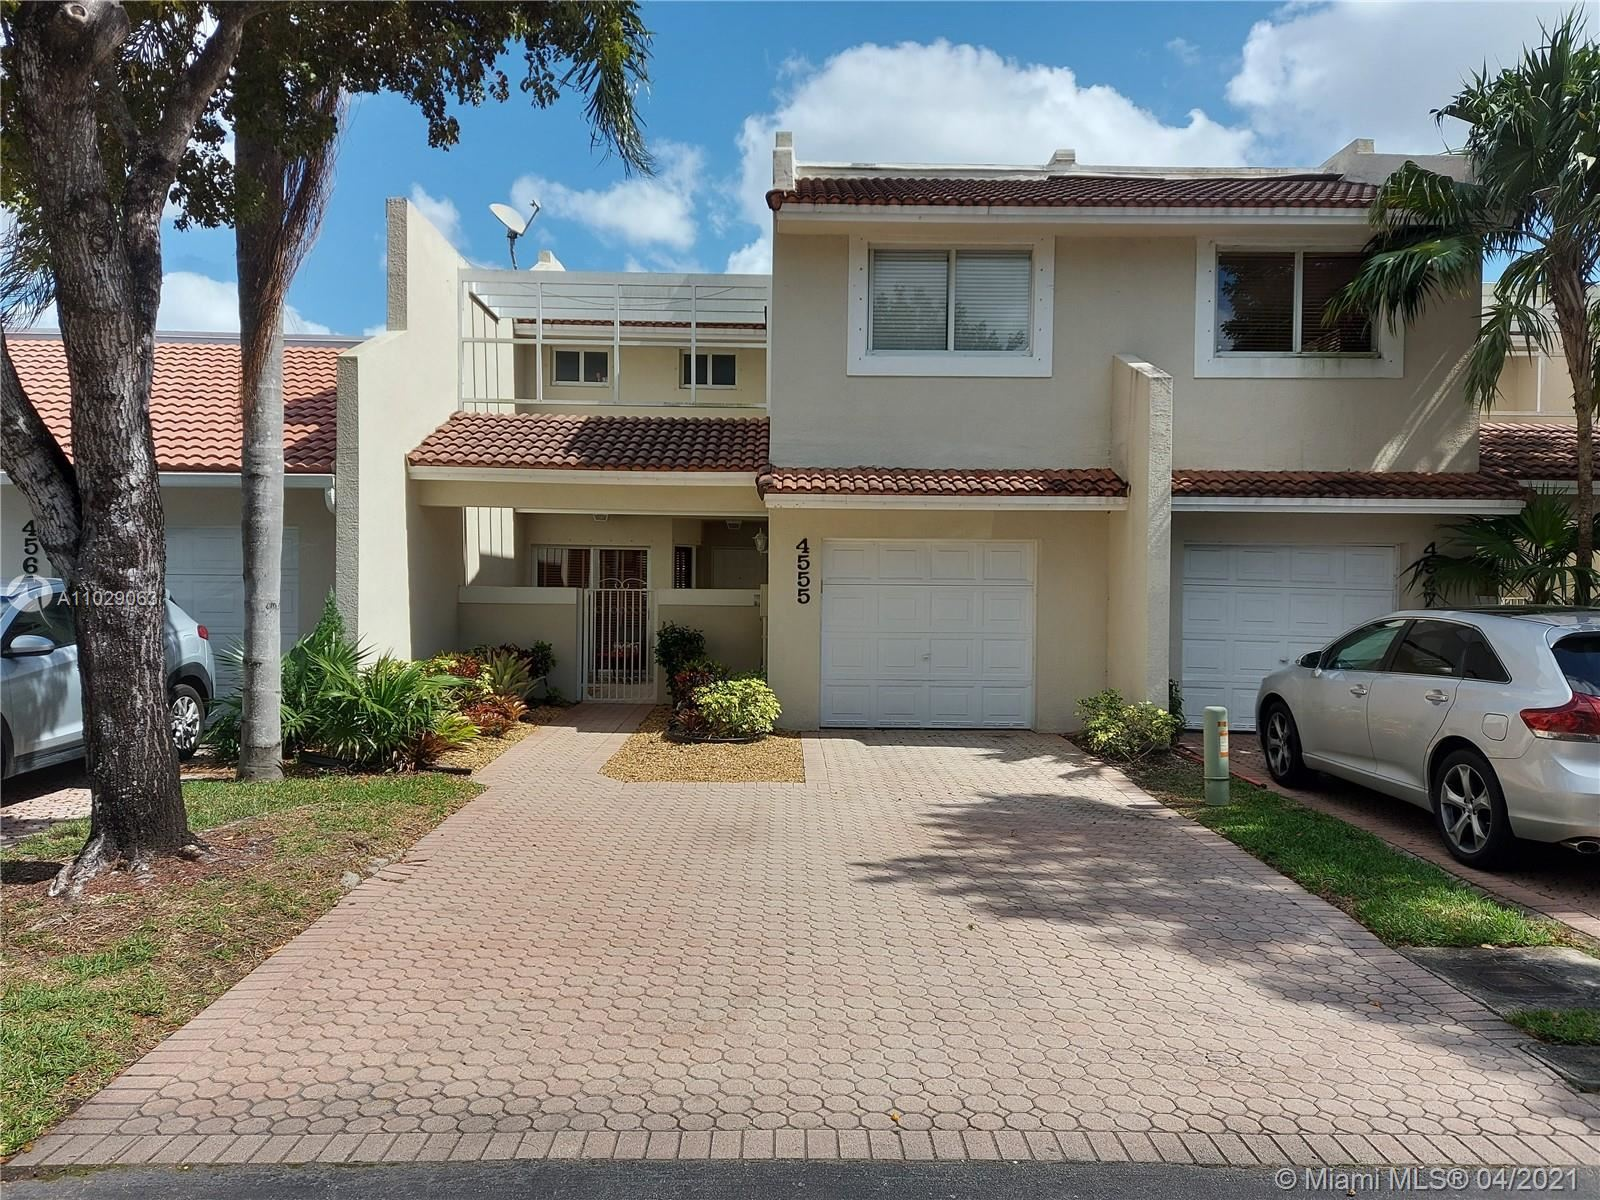 Photo of 4555 NW 98th Ave #4555, Doral, FL 33178 (MLS # A11029063)